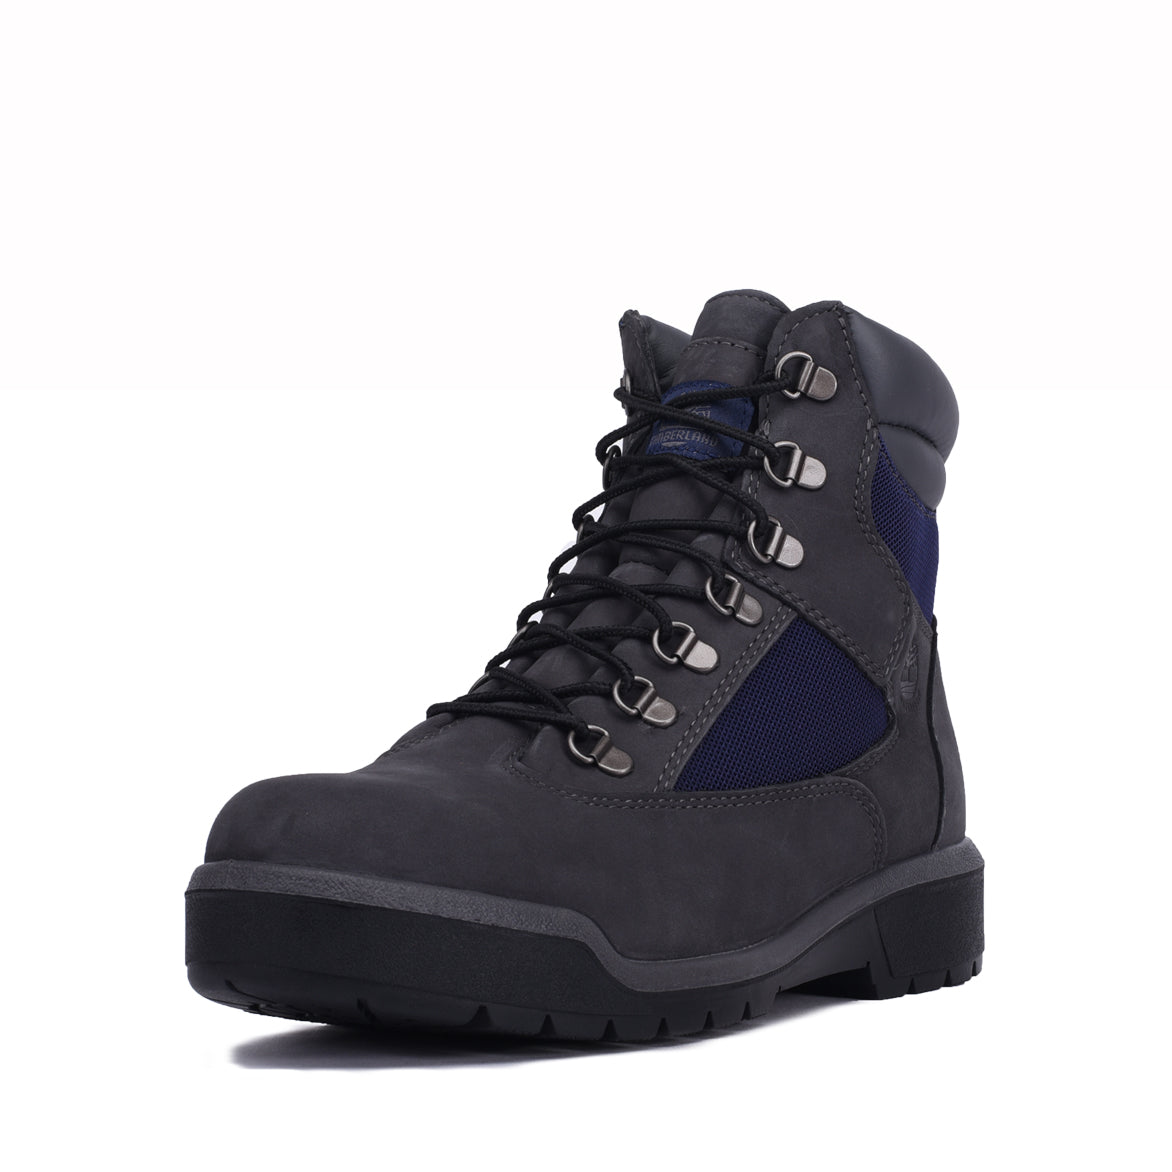 "WATERPROOF 6"" FIELD BOOT - DARK GREY"